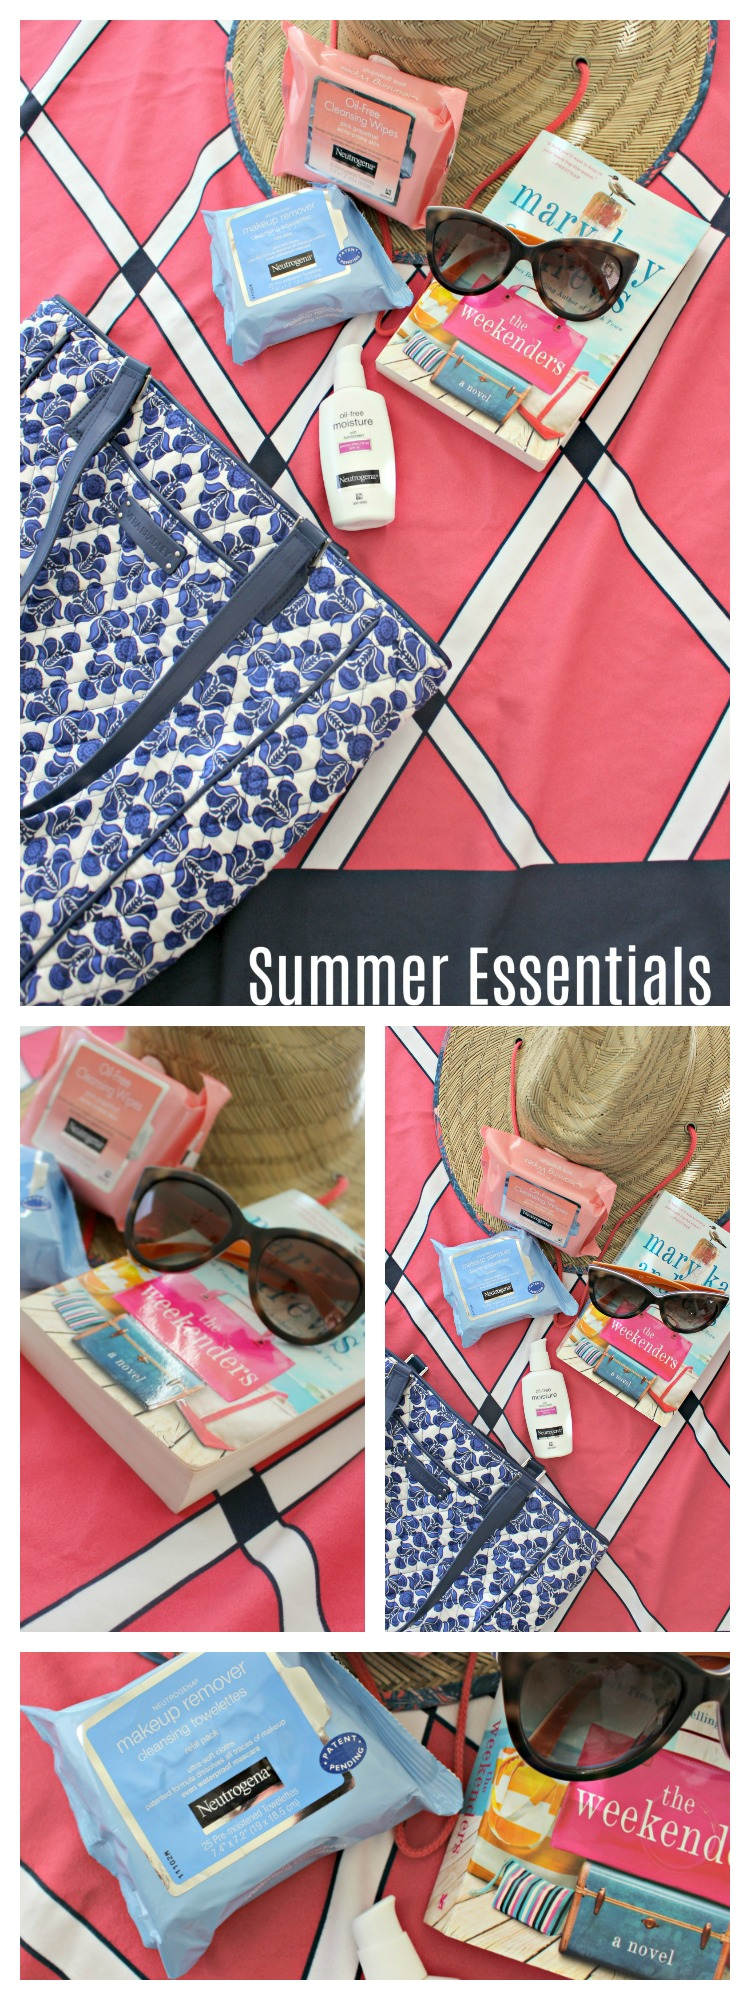 Summer Essentials for a Day on the Water! #Ad #FreshSummerSkin